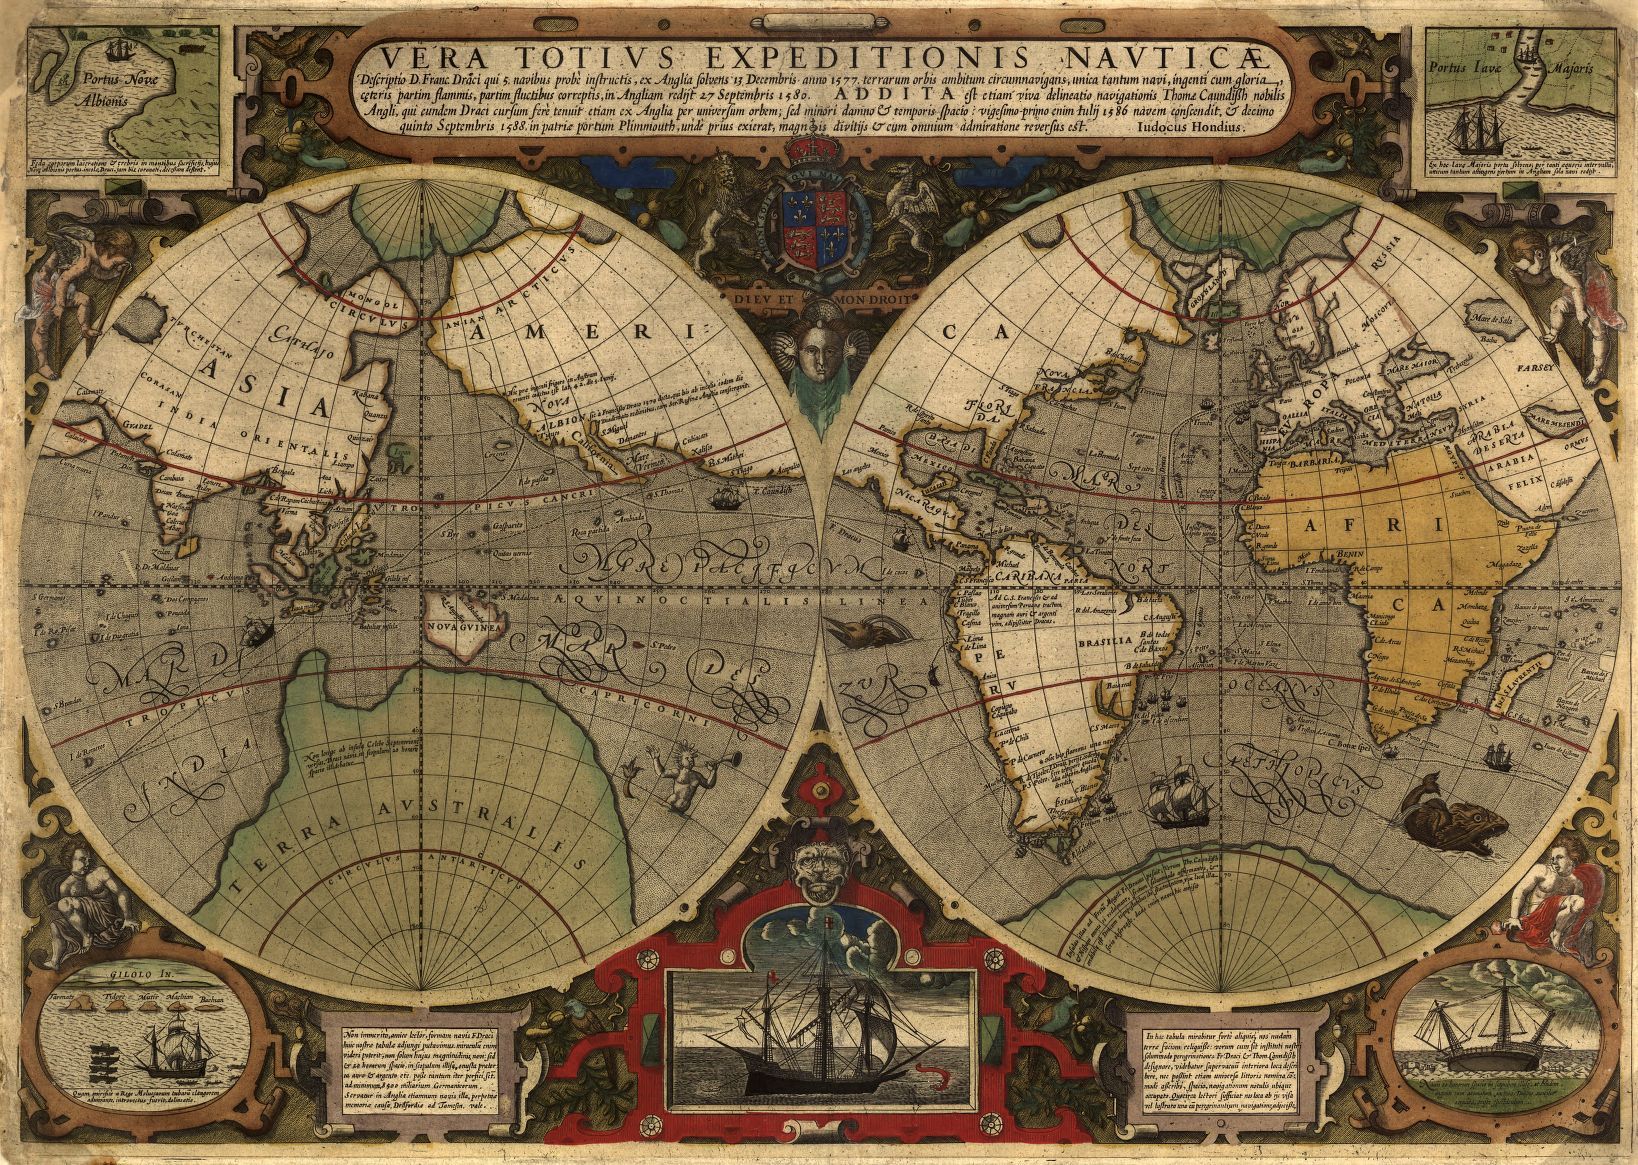 1595 antique old world map antique world maps pinterest 1595 antique world map giclee reproduction unframed or framed in vintage dark burl wood frame custom sizes made in usa by museum outlets antiquemap gumiabroncs Gallery